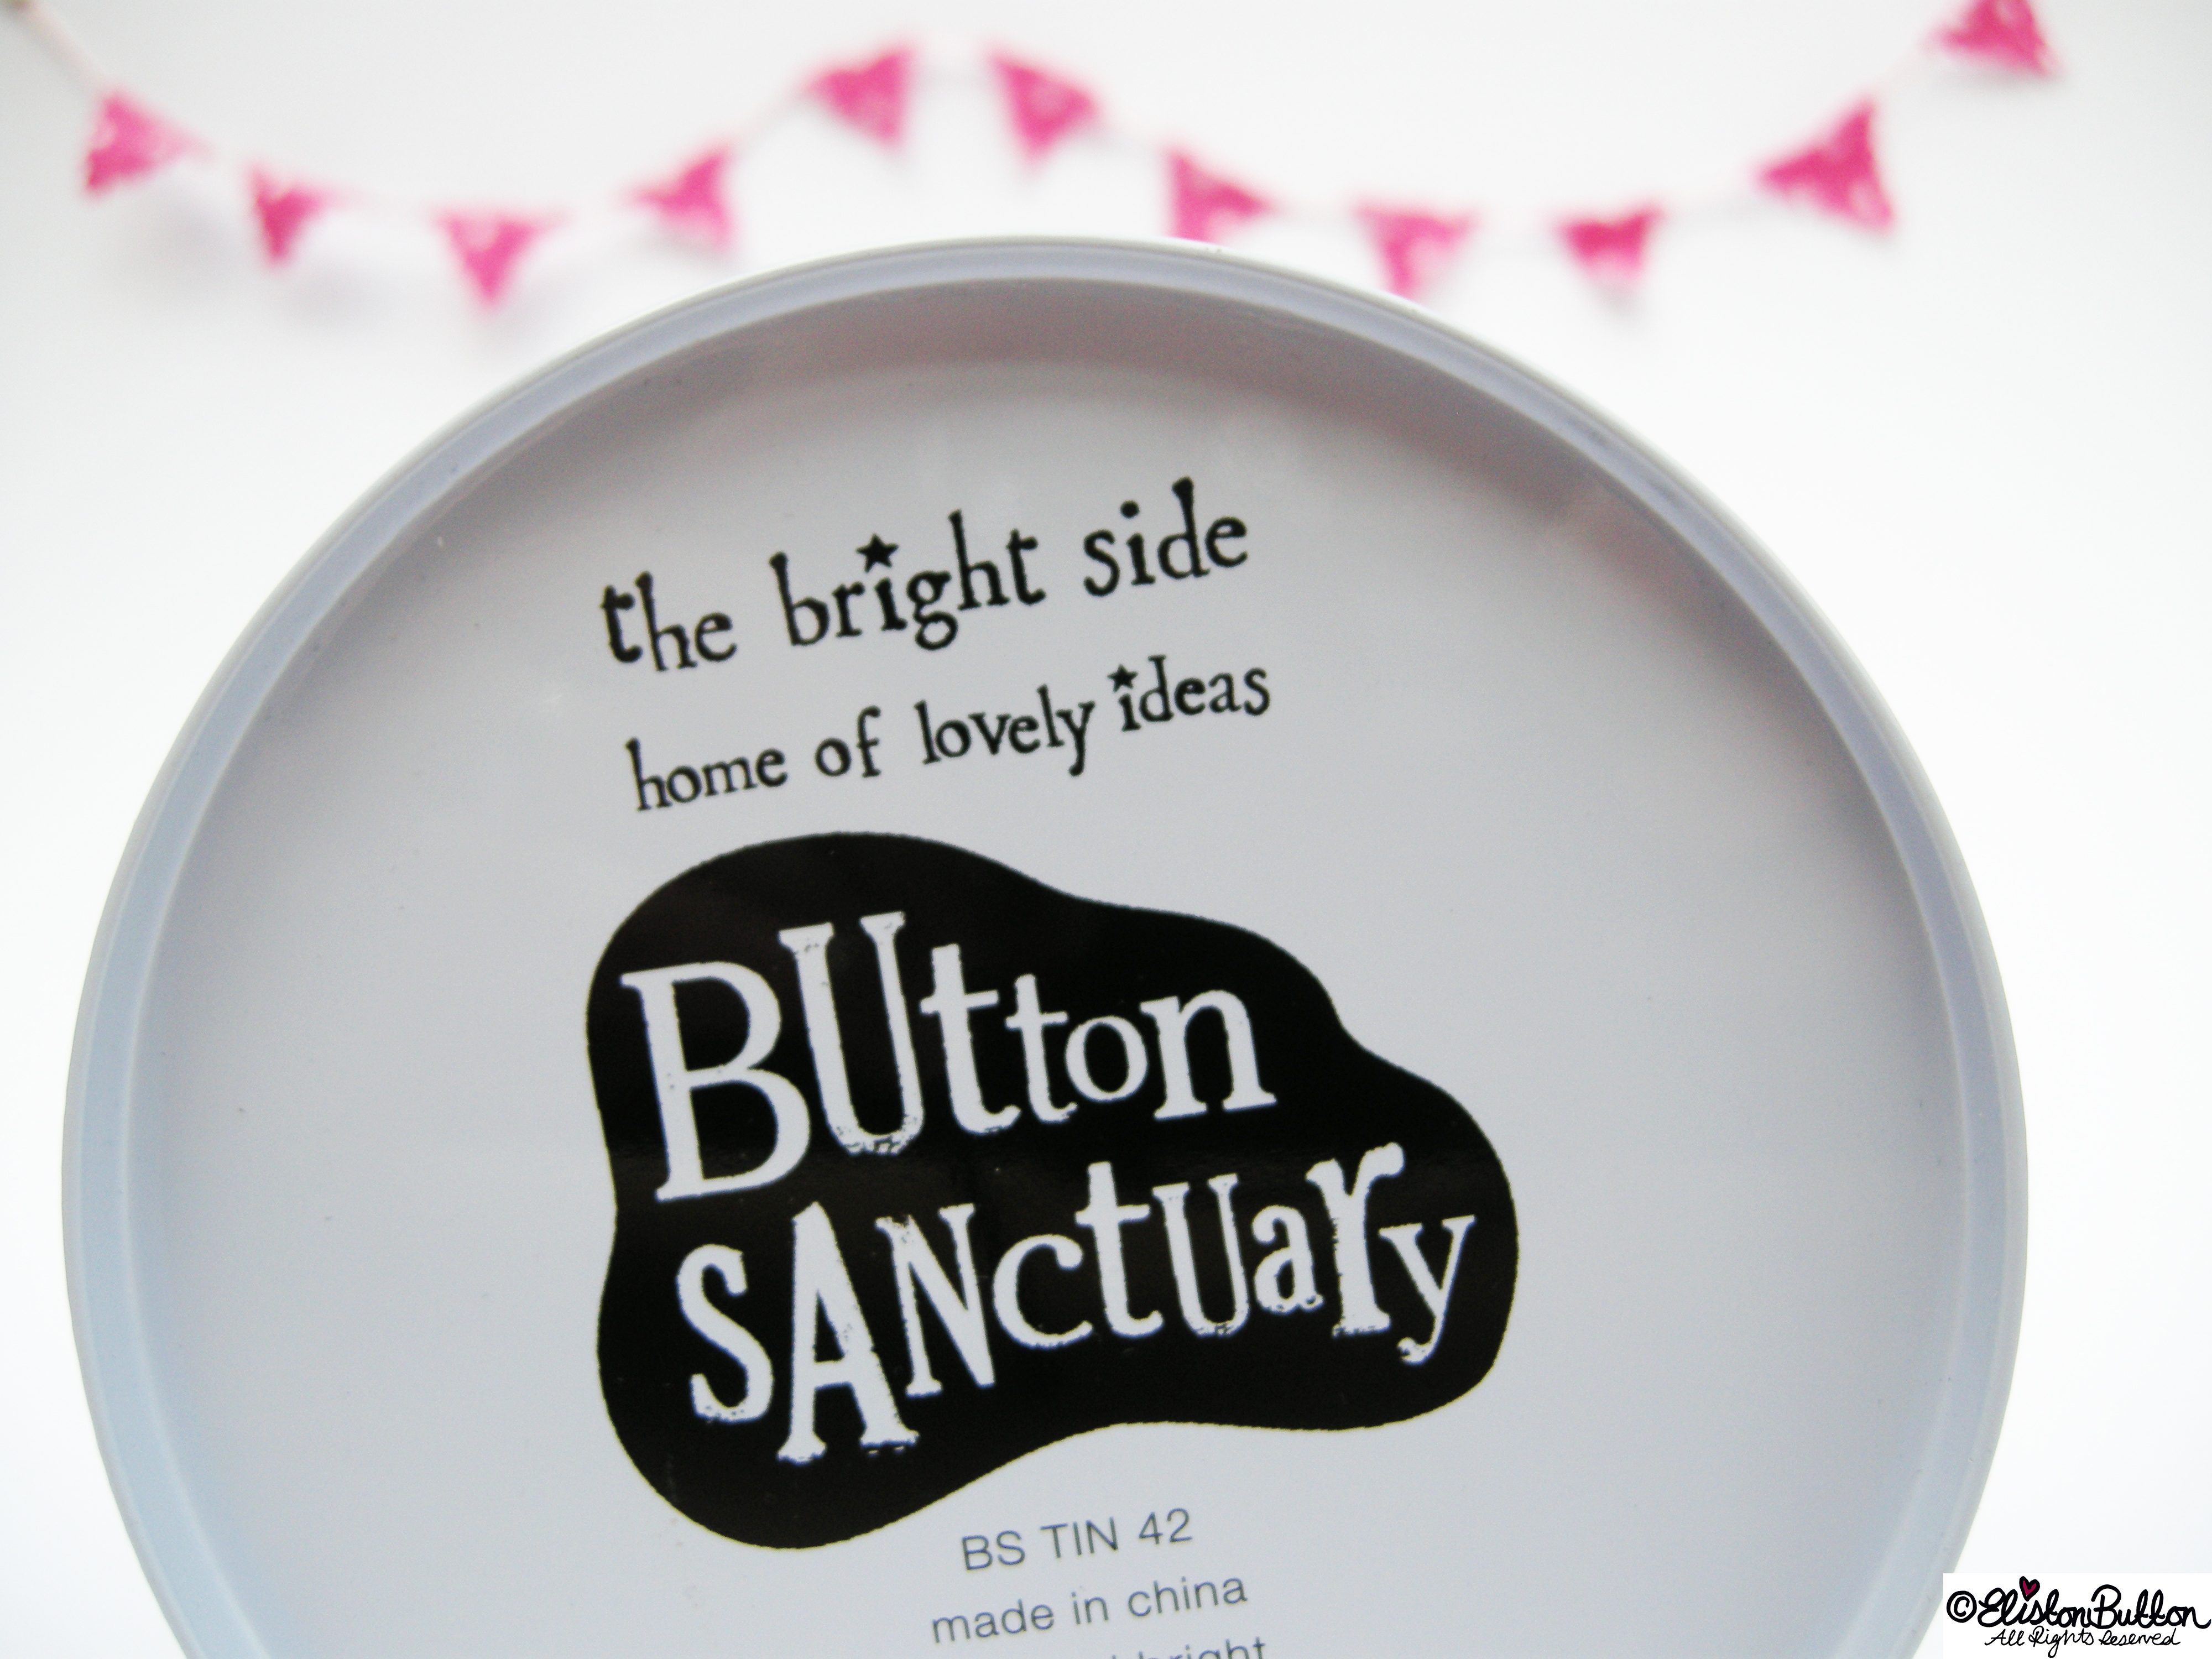 Don't Worry Mr Button I Will Save You Button Tin by The Bright Side - Underside Logo - Don't Worry Mr Button I Will Save You at www.elistonbutton.com - Eliston Button - That Crafty Kid – Art, Design, Craft & Adventure.